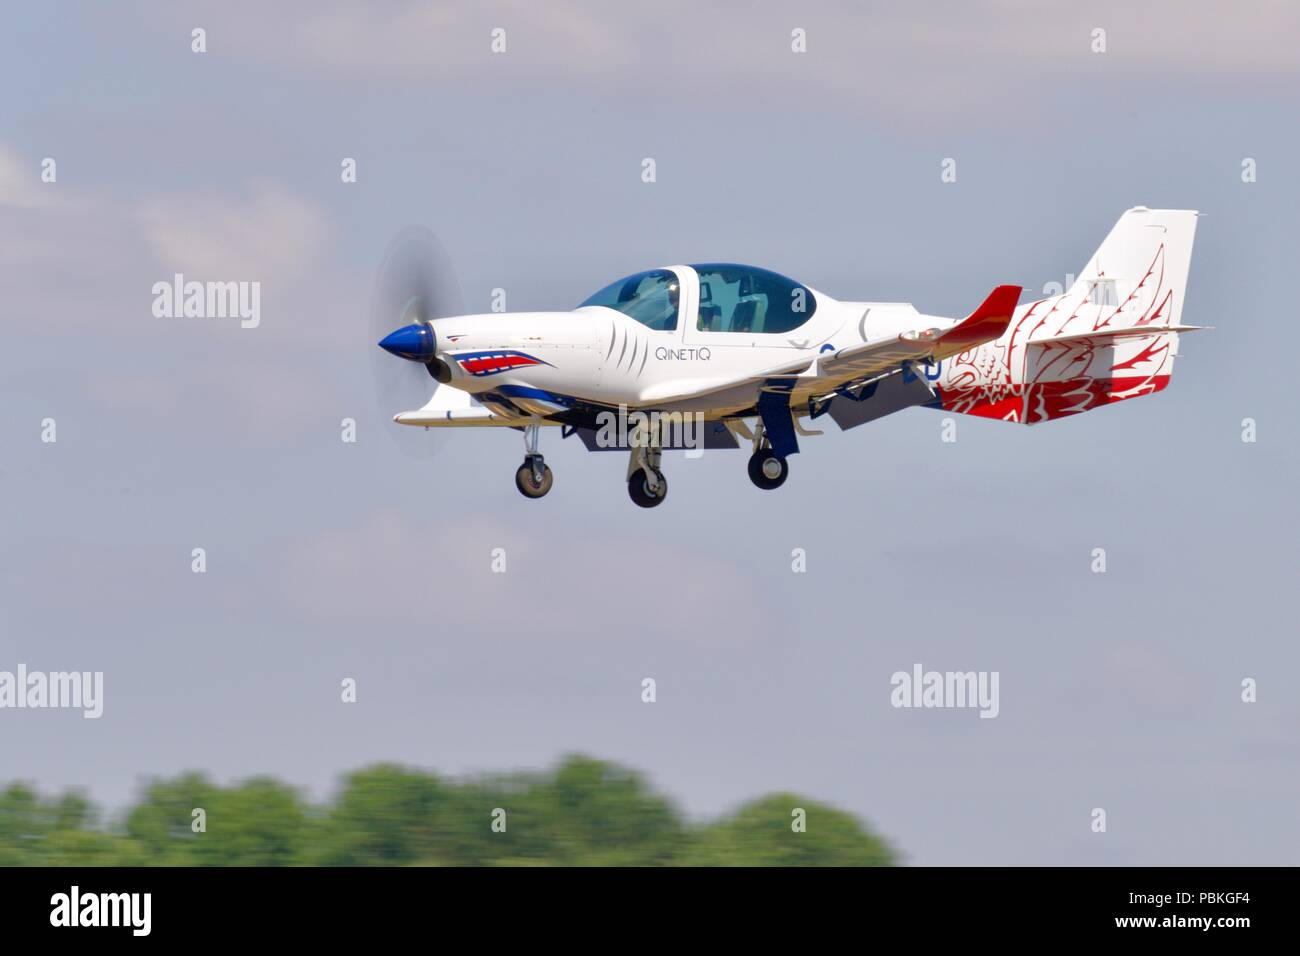 QinetiQ - Grob G-120TP (G-ETPD) landing at RAF Fairford to take part in the static display at the 2018 Royal International Air Tattoo - Stock Image